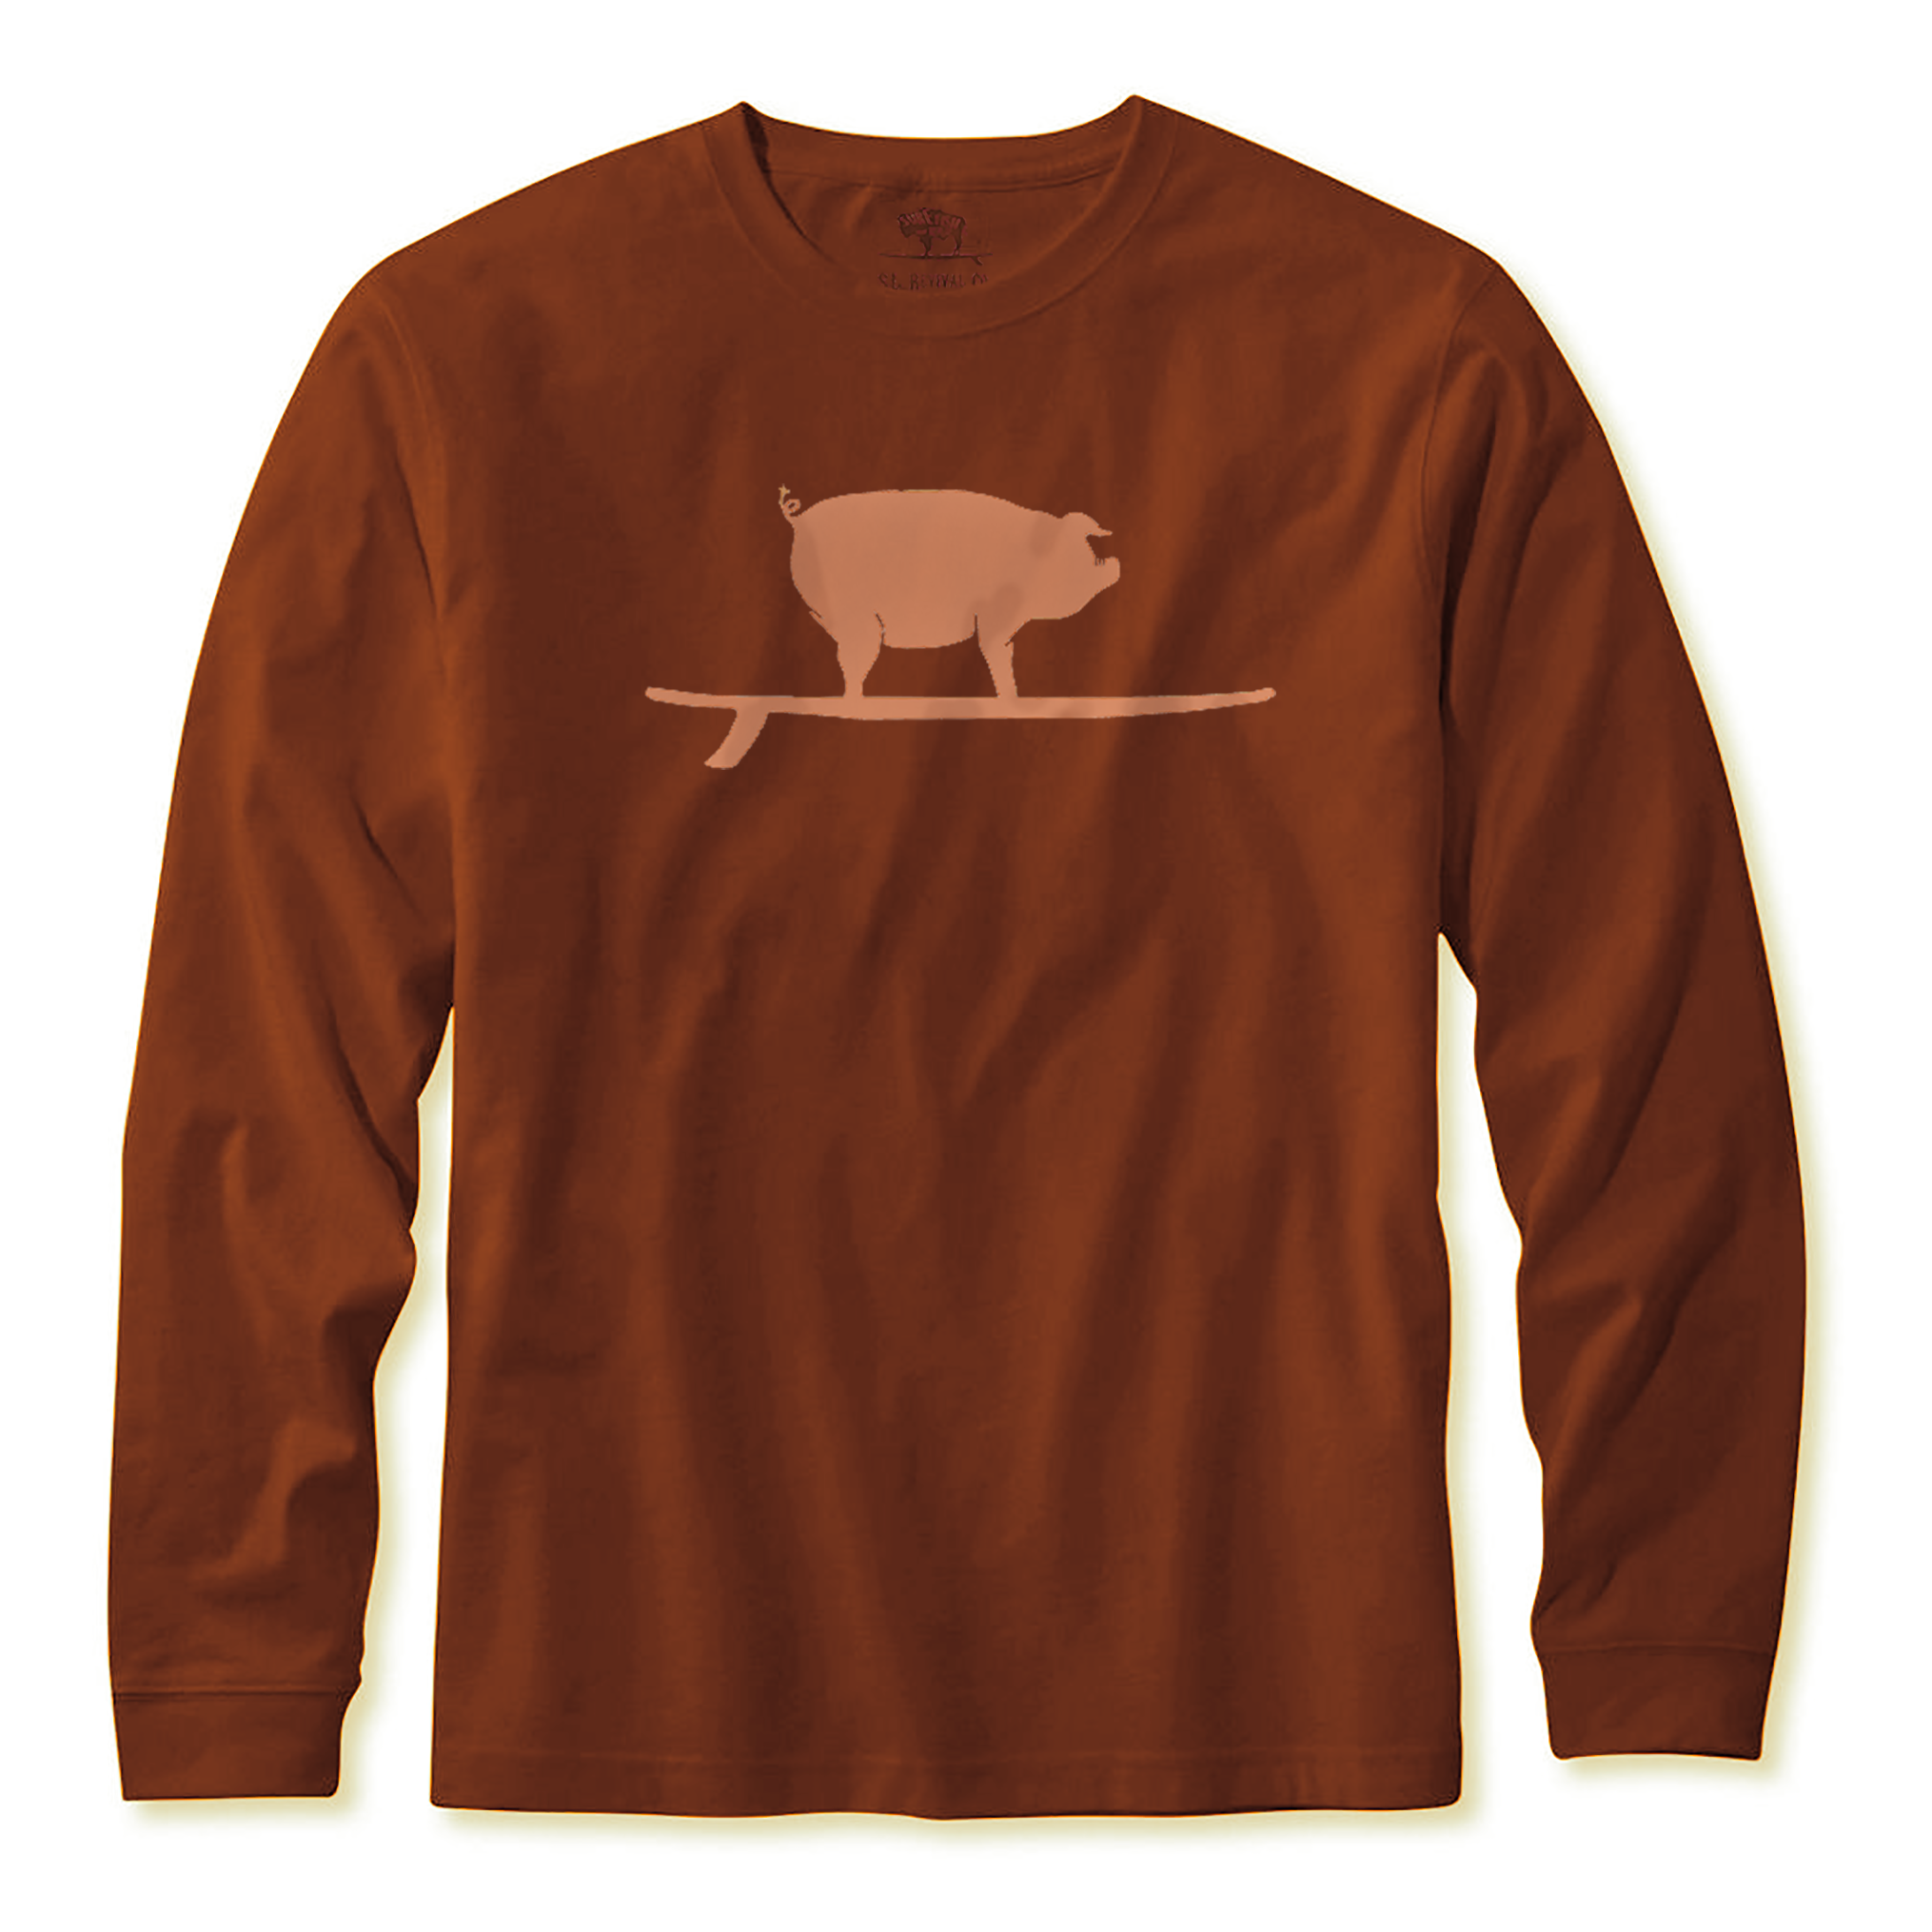 S.L. Revival Co. Surfing Pig L/S Tee, Clay